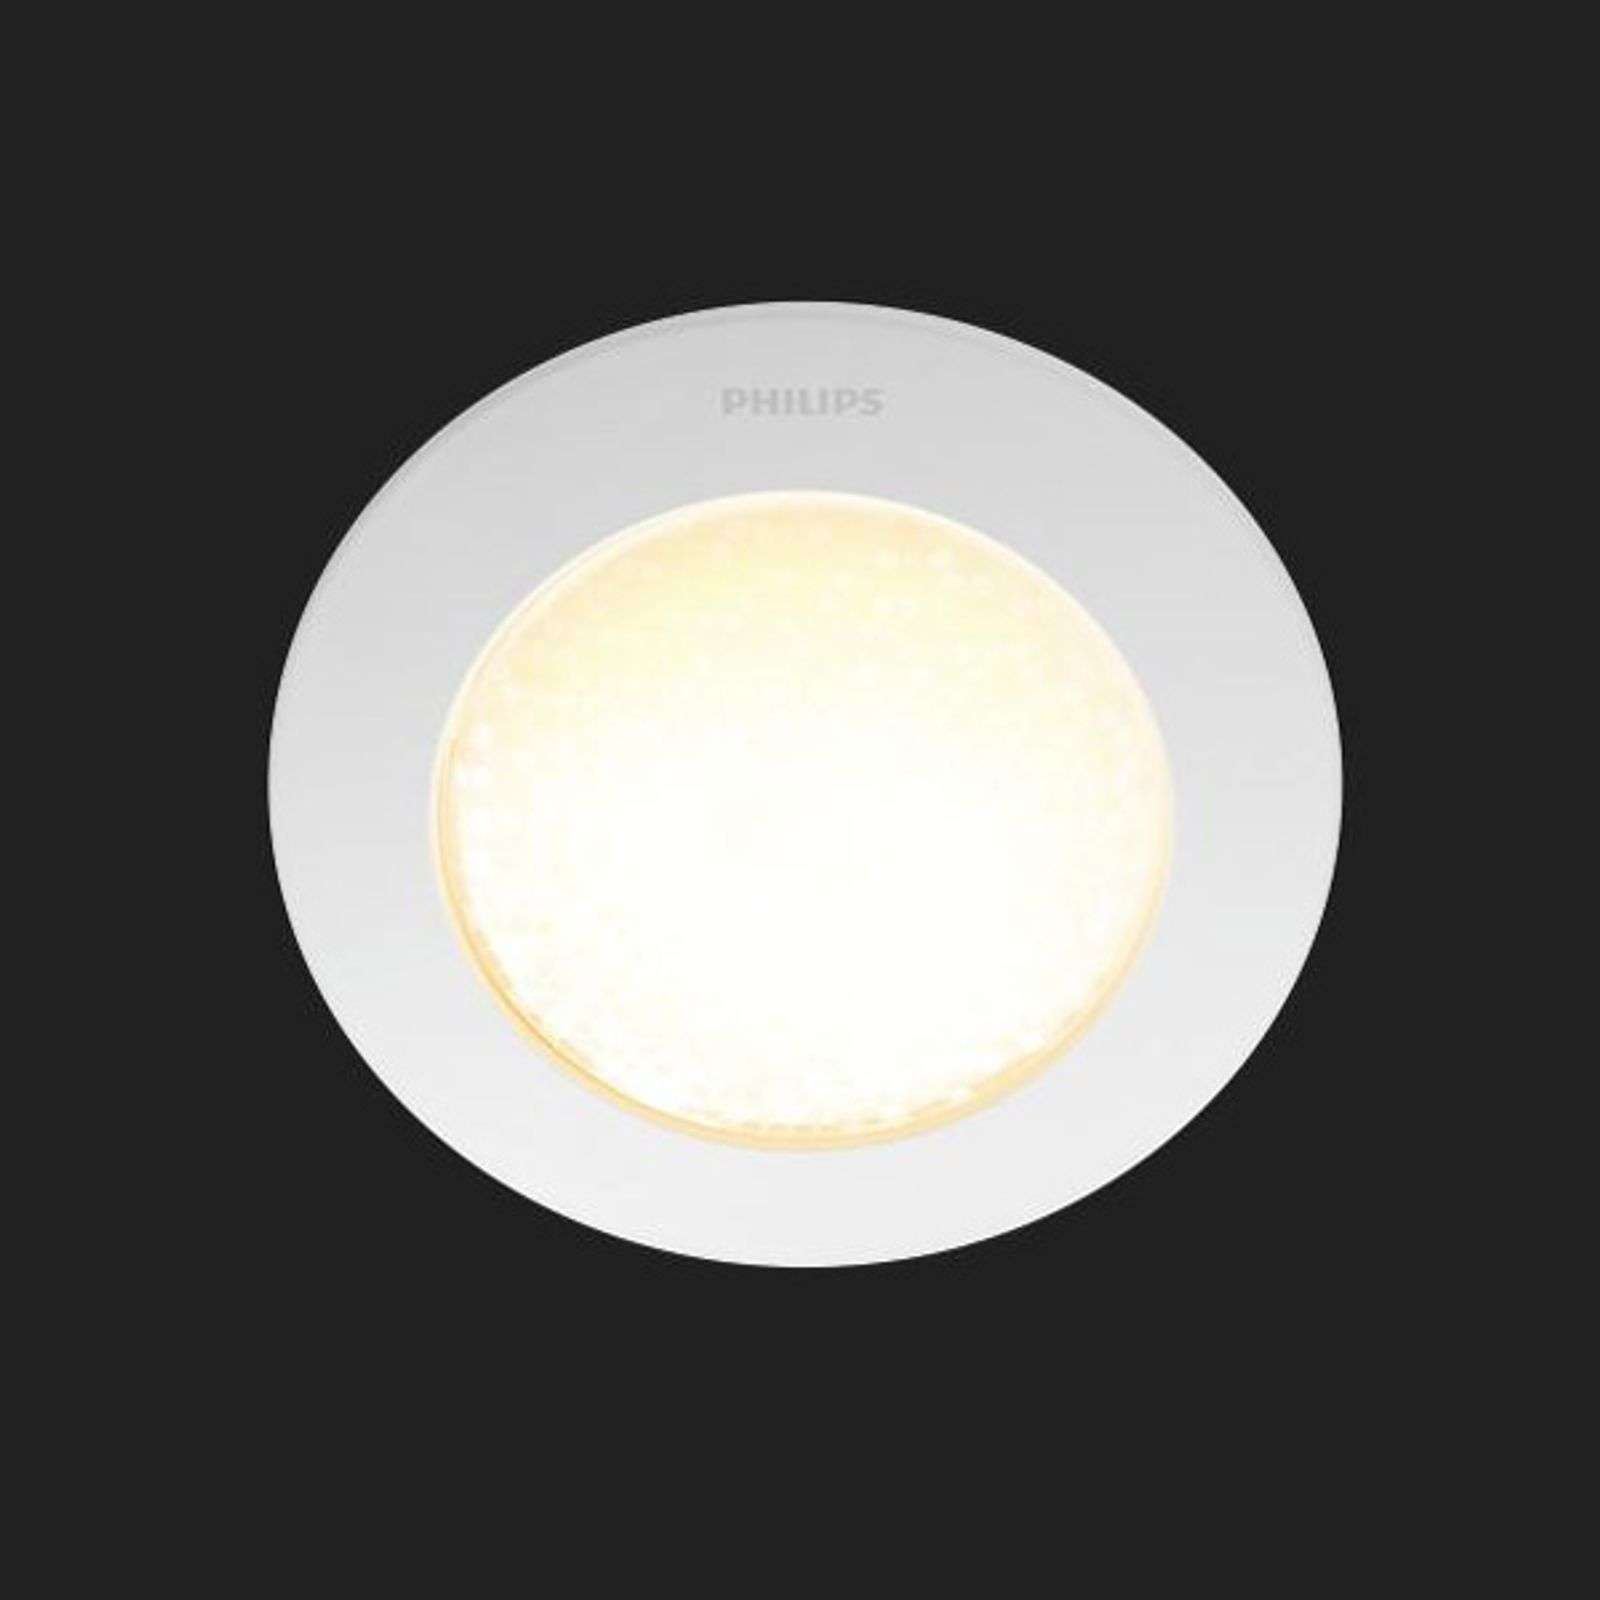 Downlight Philips Hue Phoenix, White Ambiance